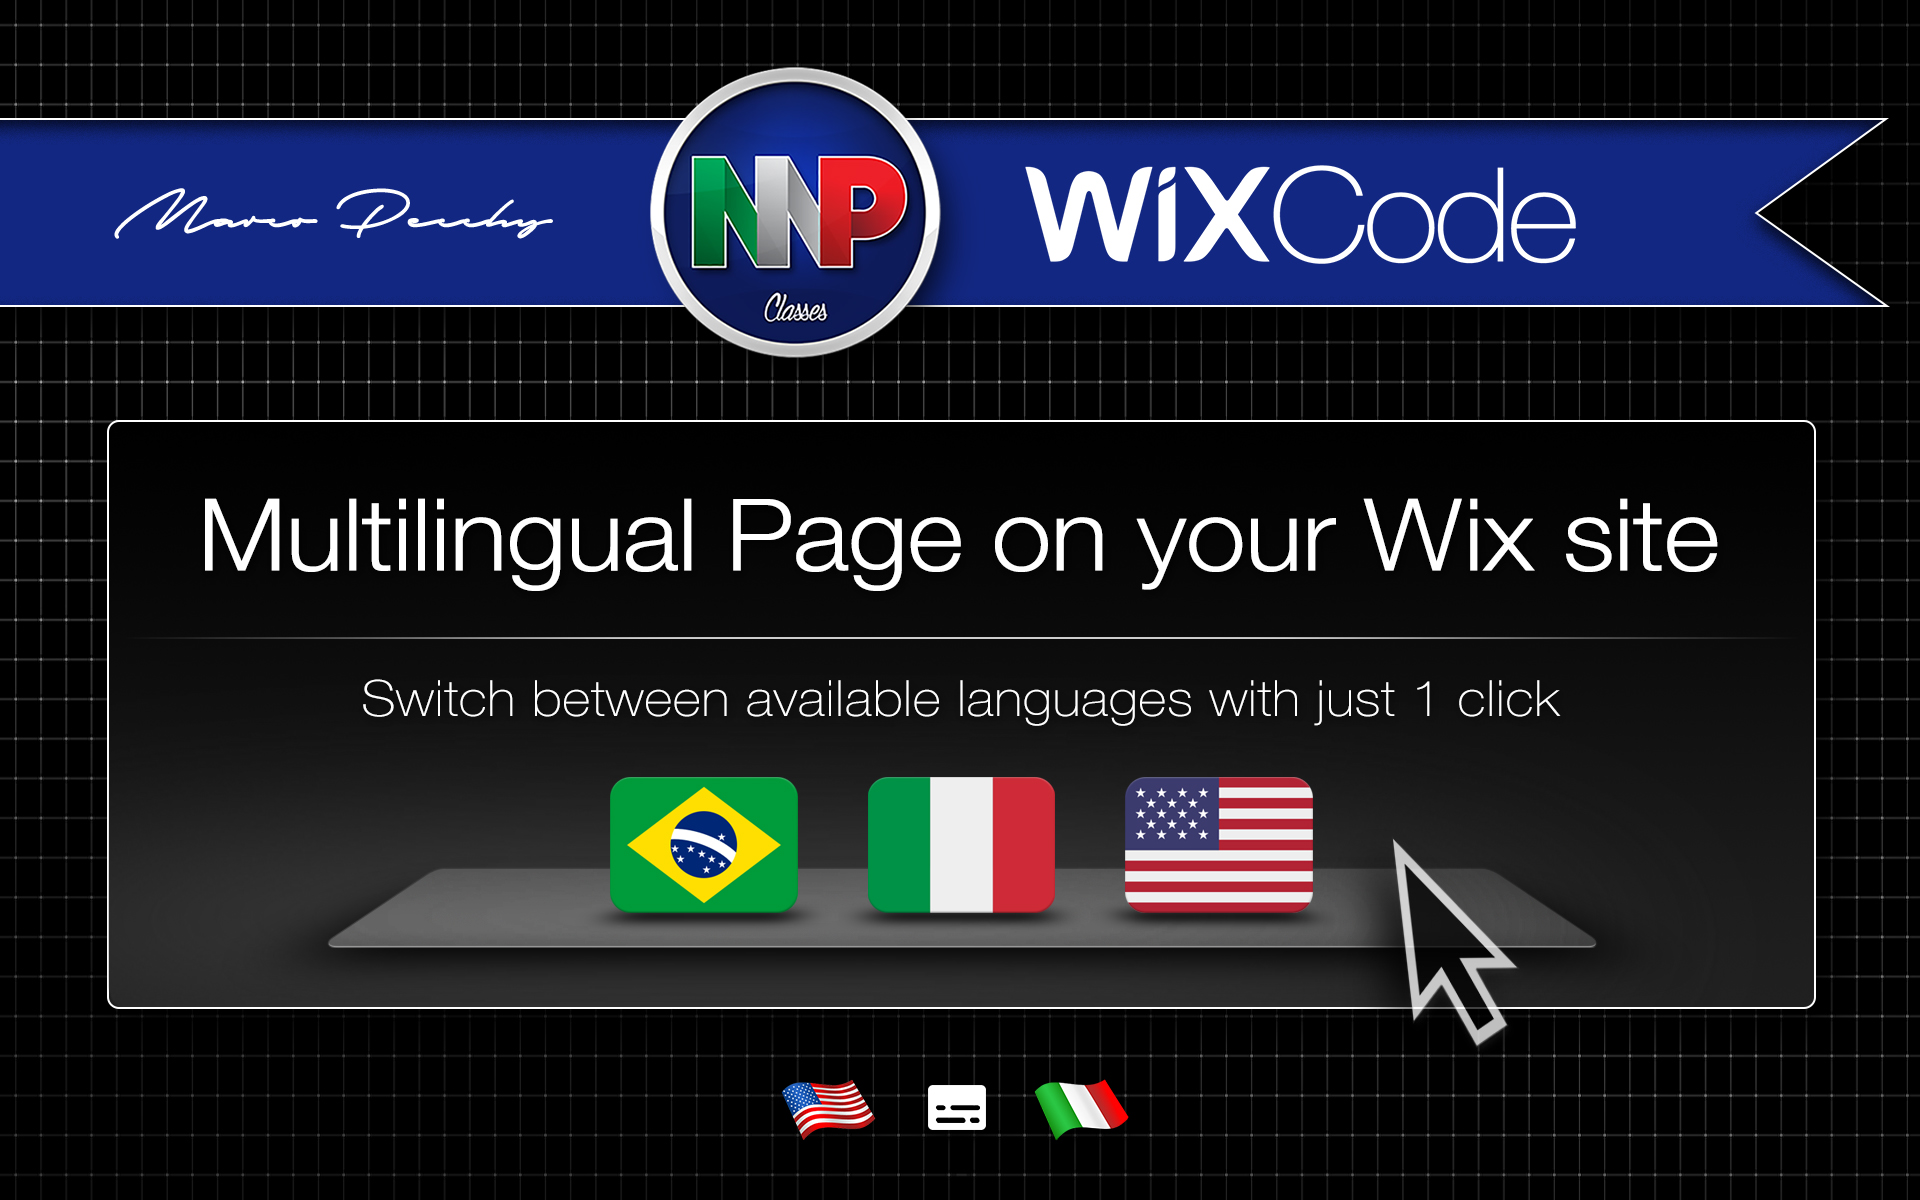 Multilingual Pages on your Wix site